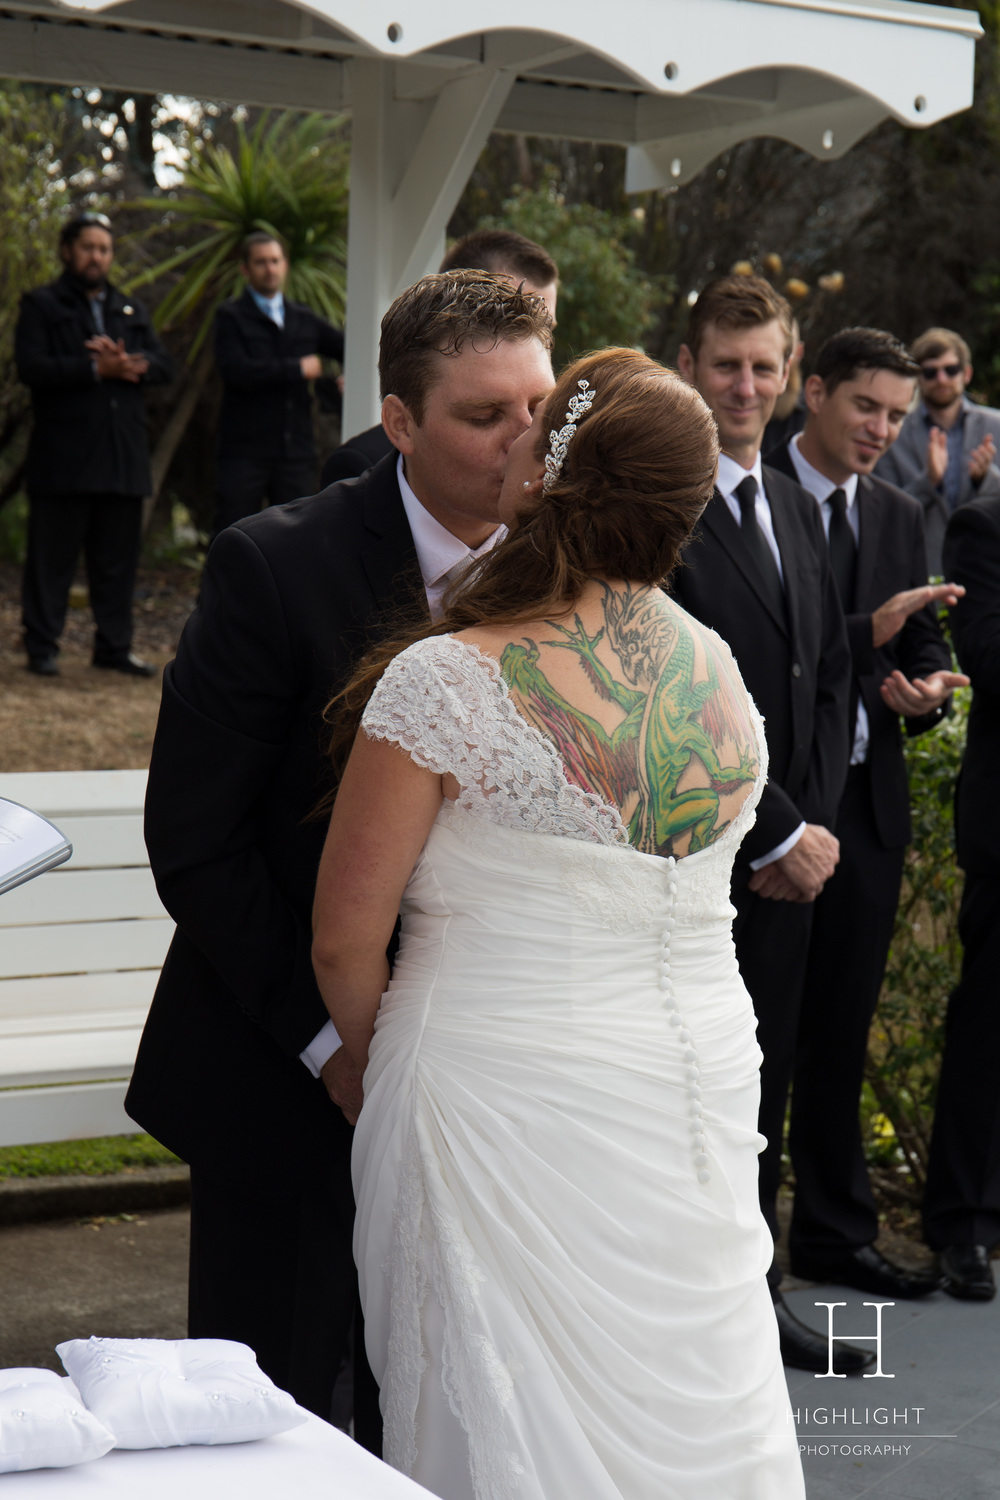 highlight-photography-wedding-new-zealand.jpg